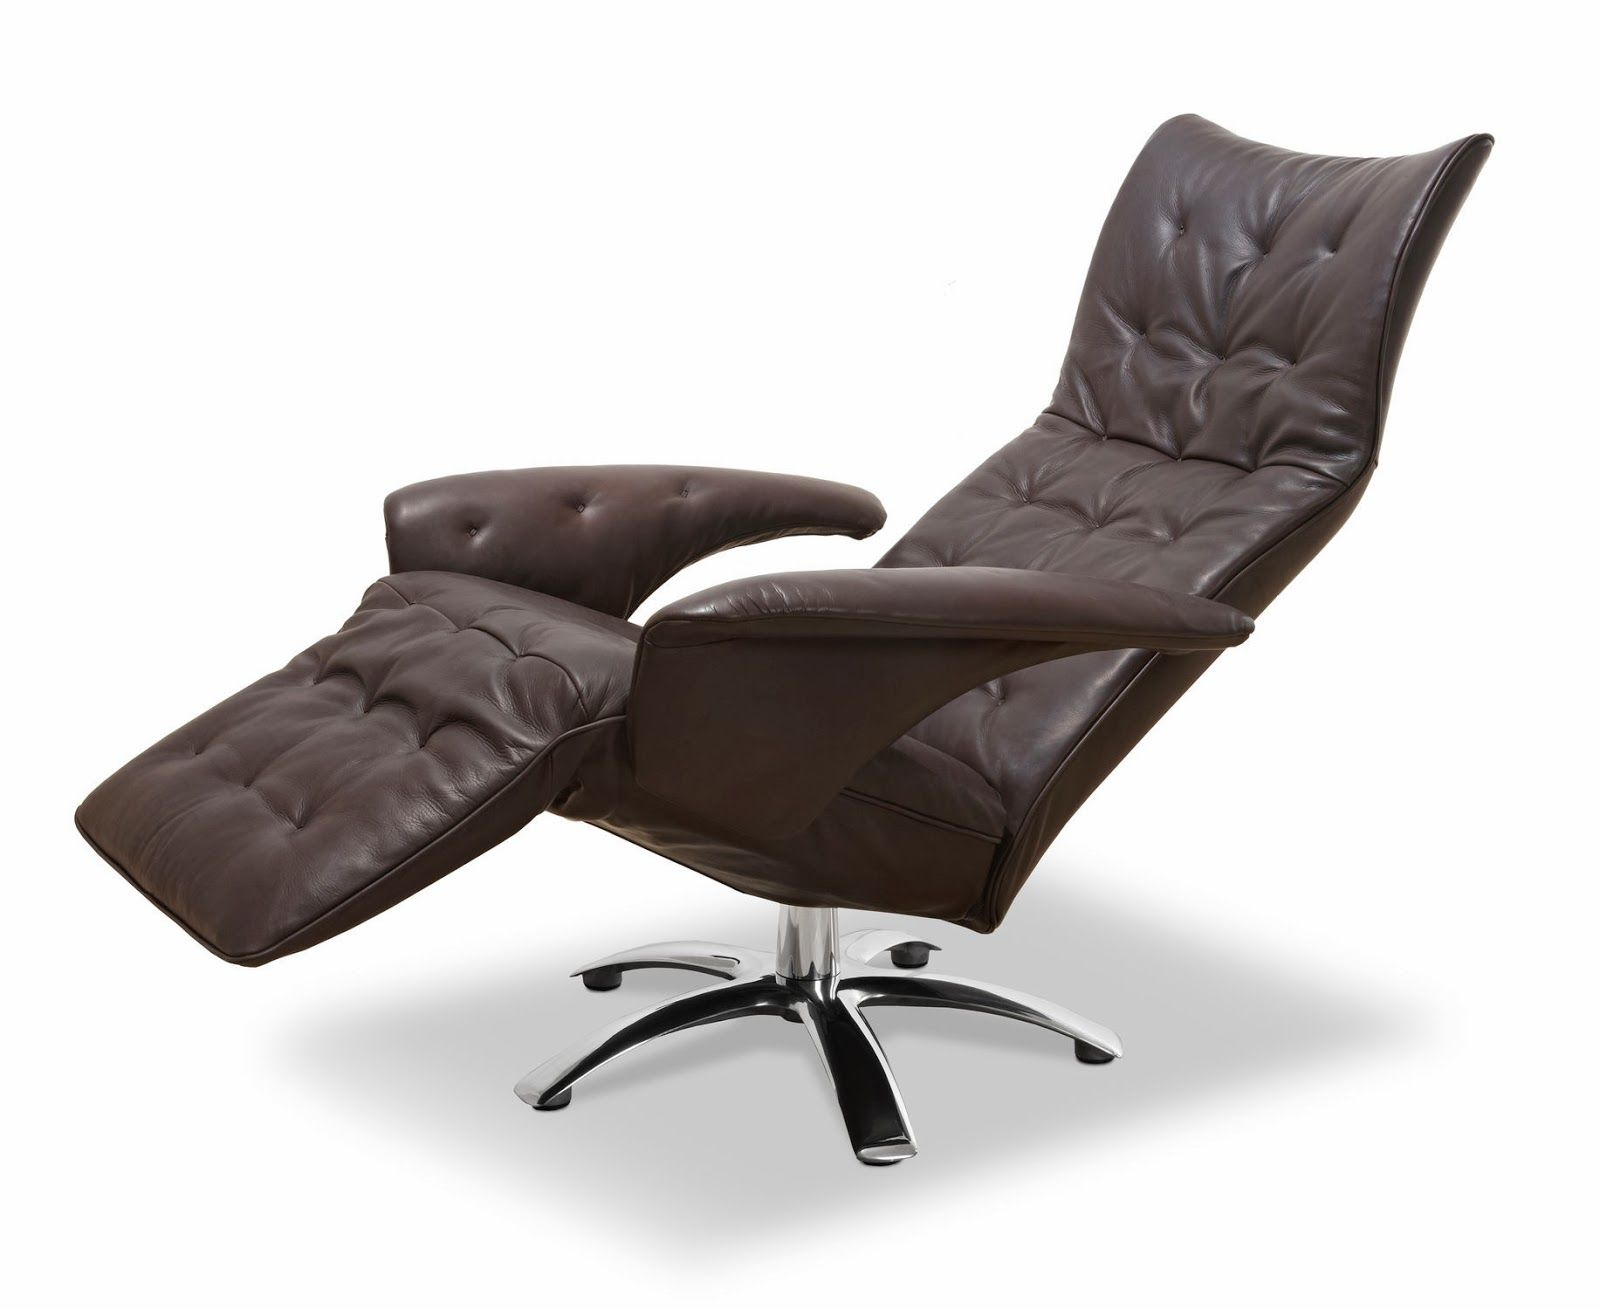 Modern Leather Recliner Swivel Chair Ekornes Stressless Furniture Design With Brown As Footrest Interesting